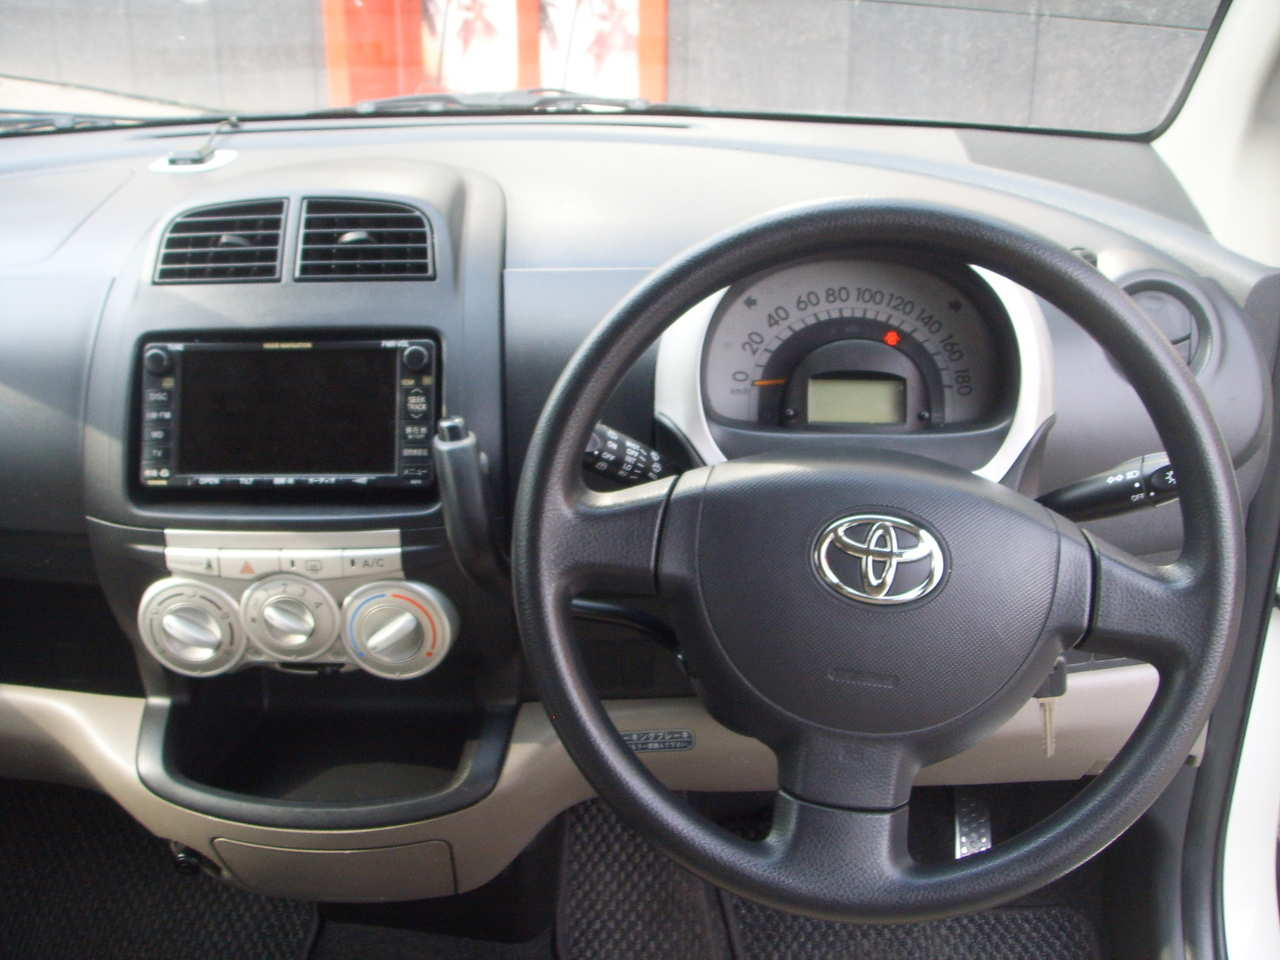 used 2005 toyota passo photos 996cc gasoline ff automatic for sale rh cars directory net Red 2004 Toyota Passo Toyota Passo 2009 Gray